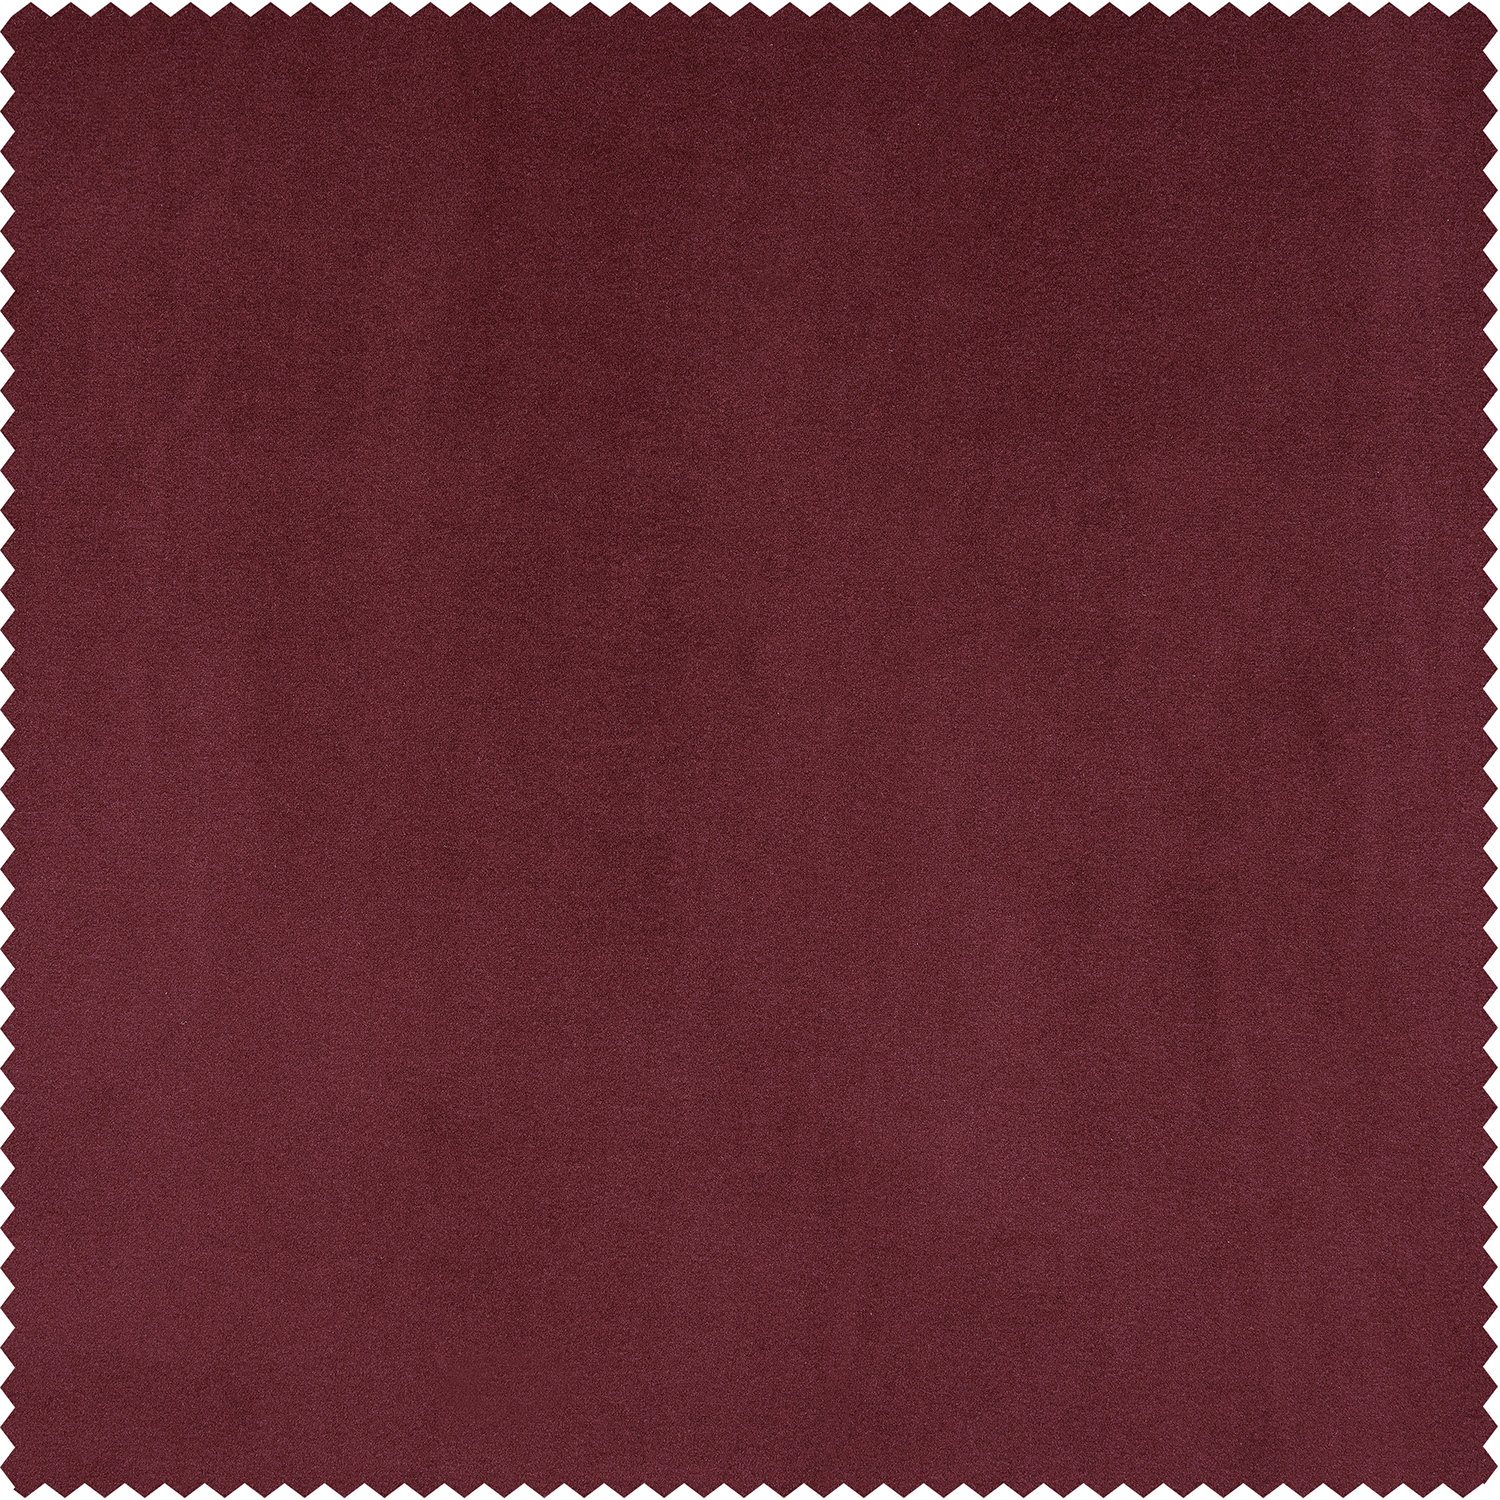 Cinema Red Heritage Plush Velvet Fabric